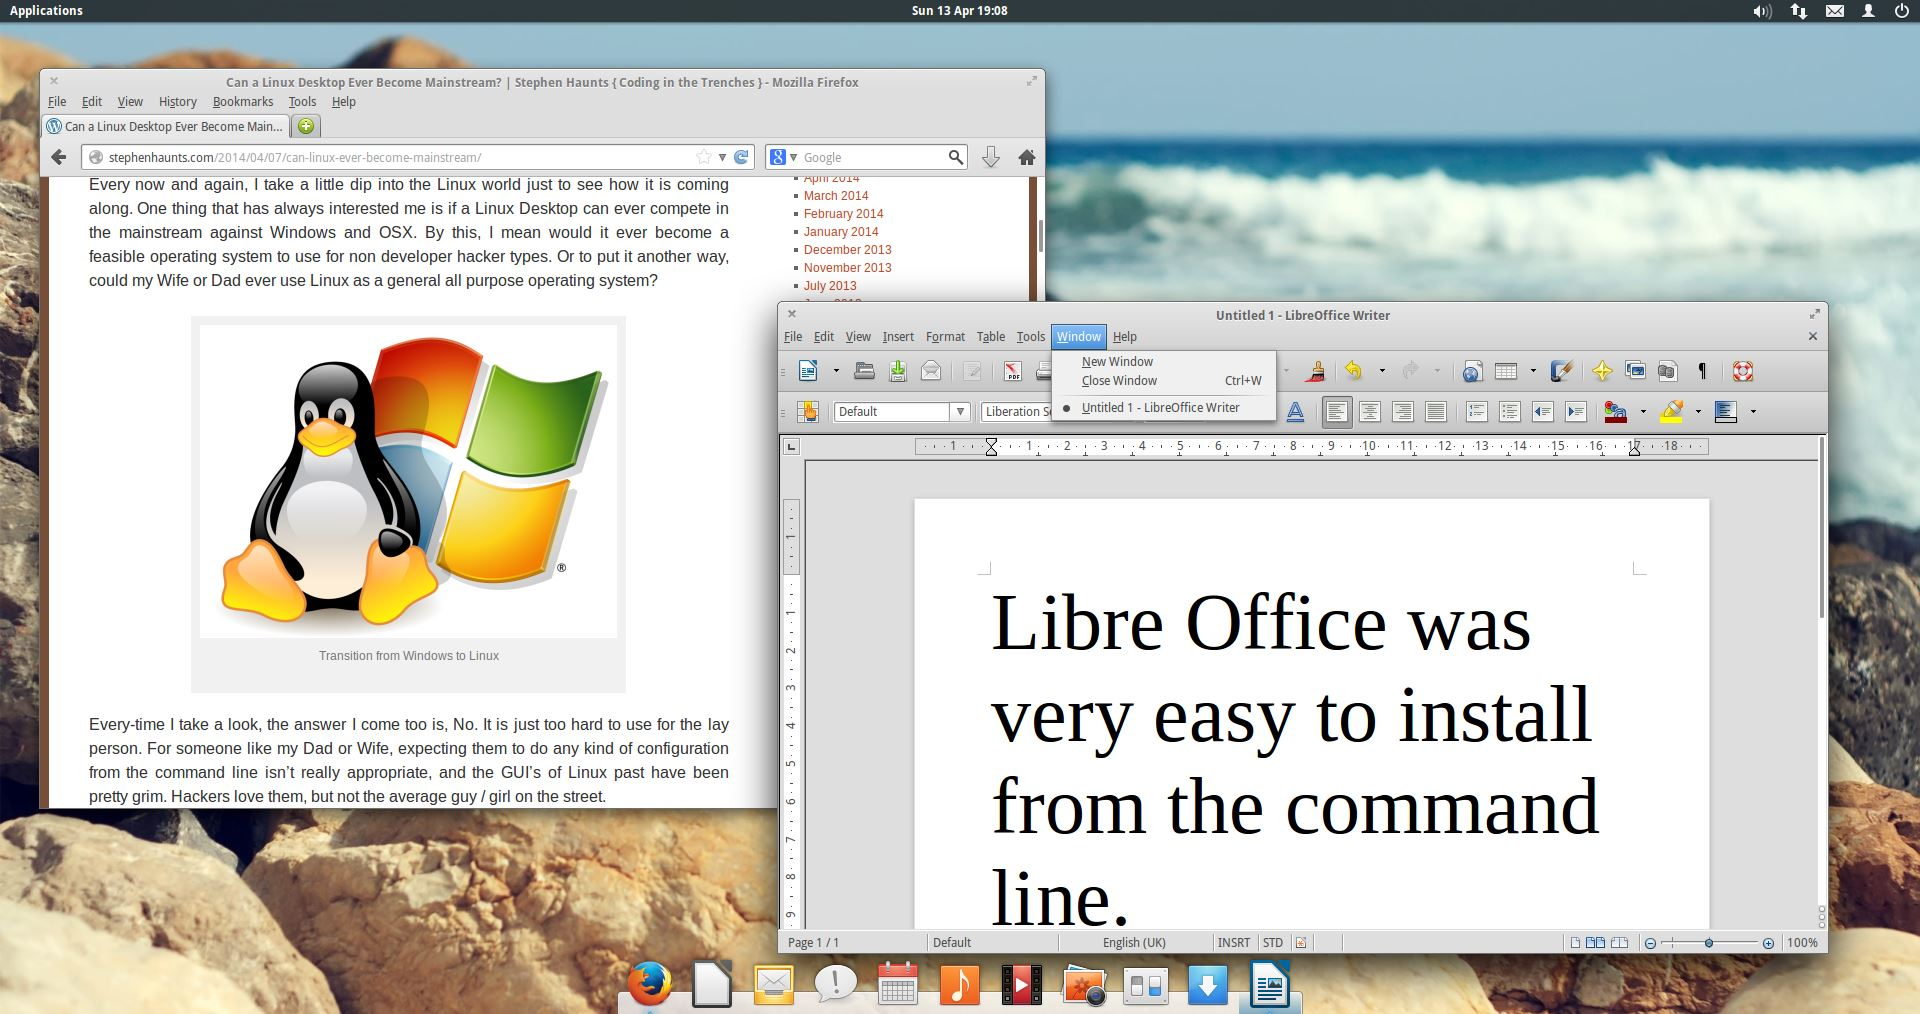 Software Libre Office Elementary Os The Stylish Minimalist Linux Distribution